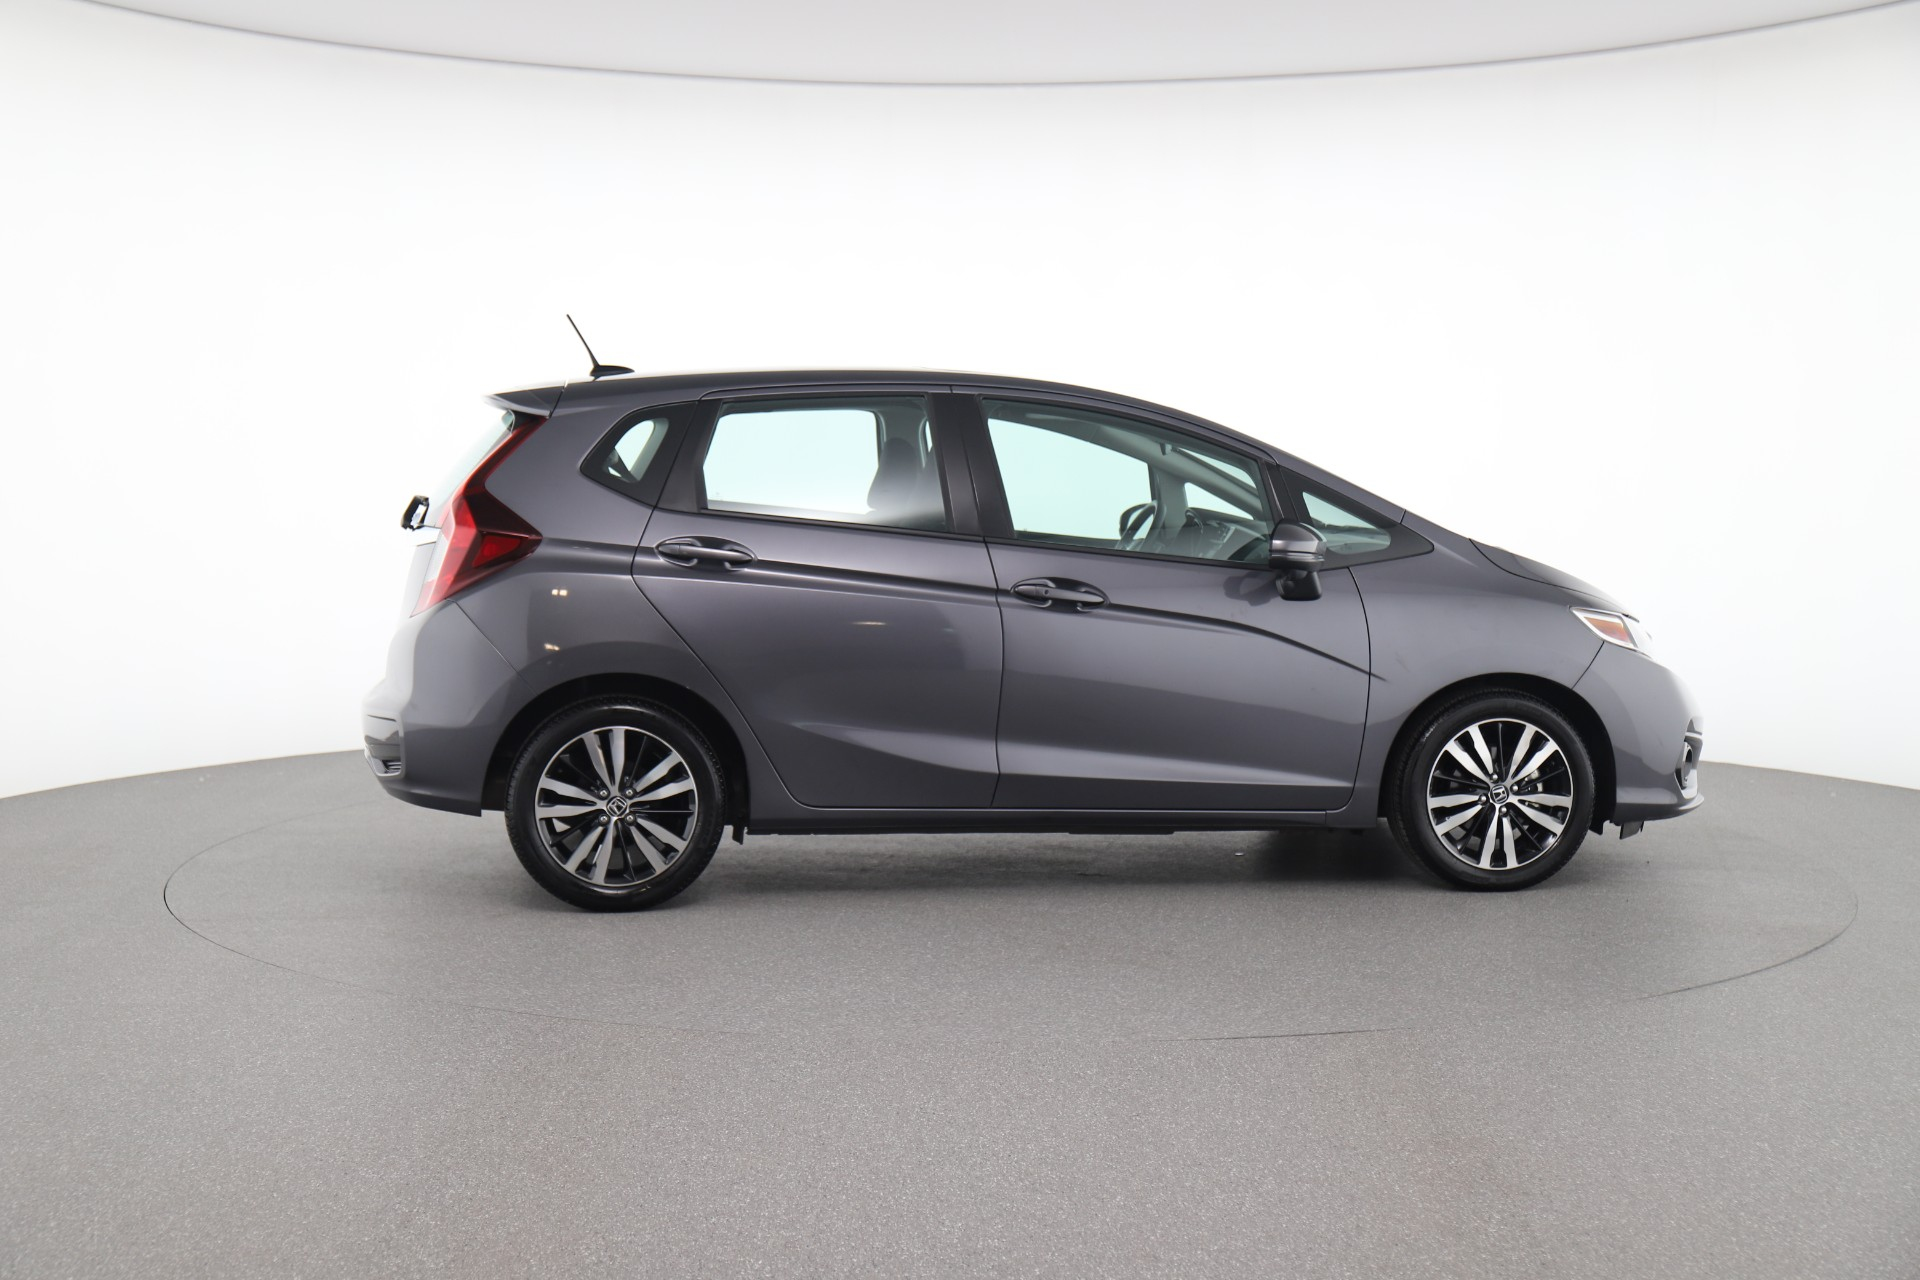 2019 Honda Fit EX (from $18,500)